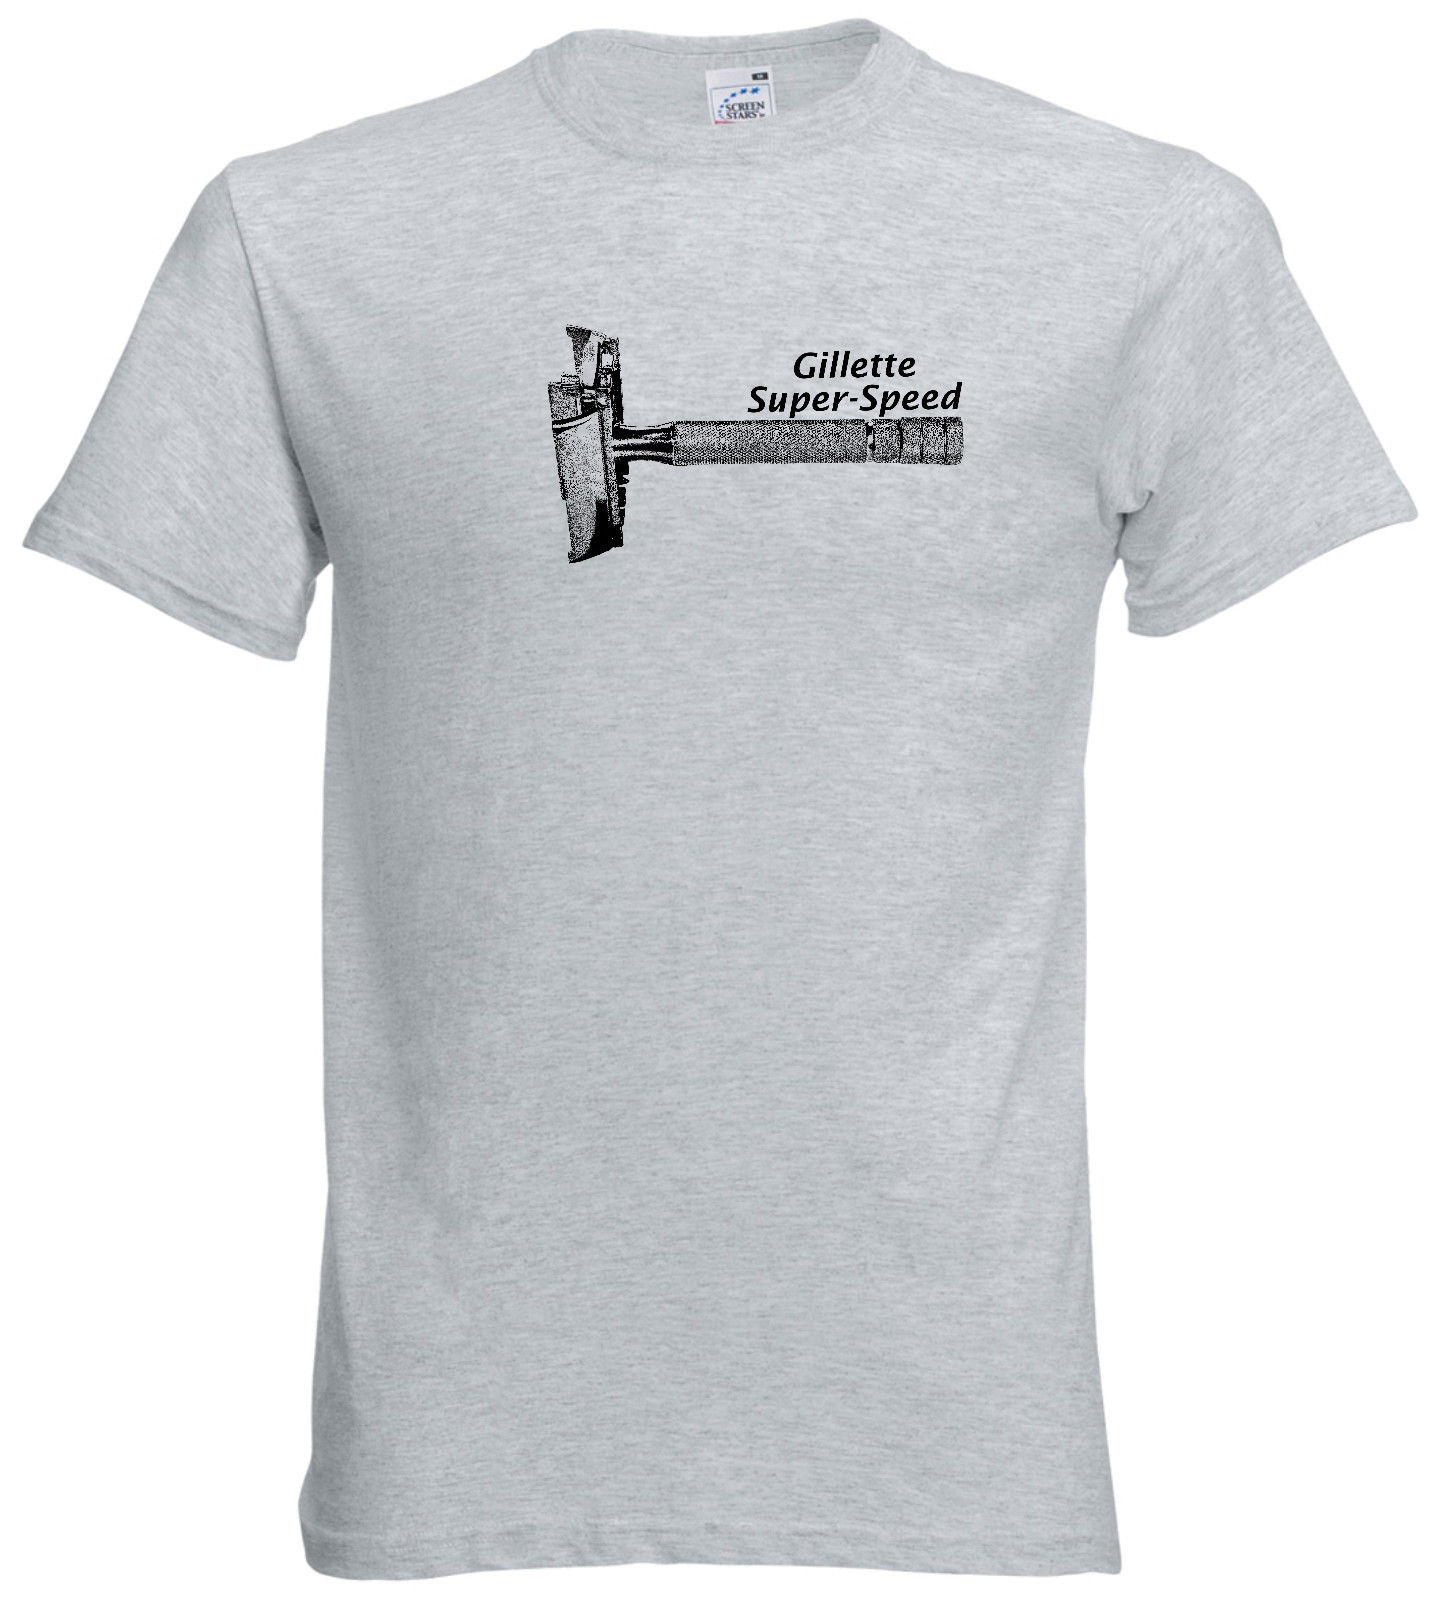 2019 Super Speed DE Adjustable Razor <font><b>Shaving</b></font> Men's T <font><b>Shirt</b></font> Super-Speed image